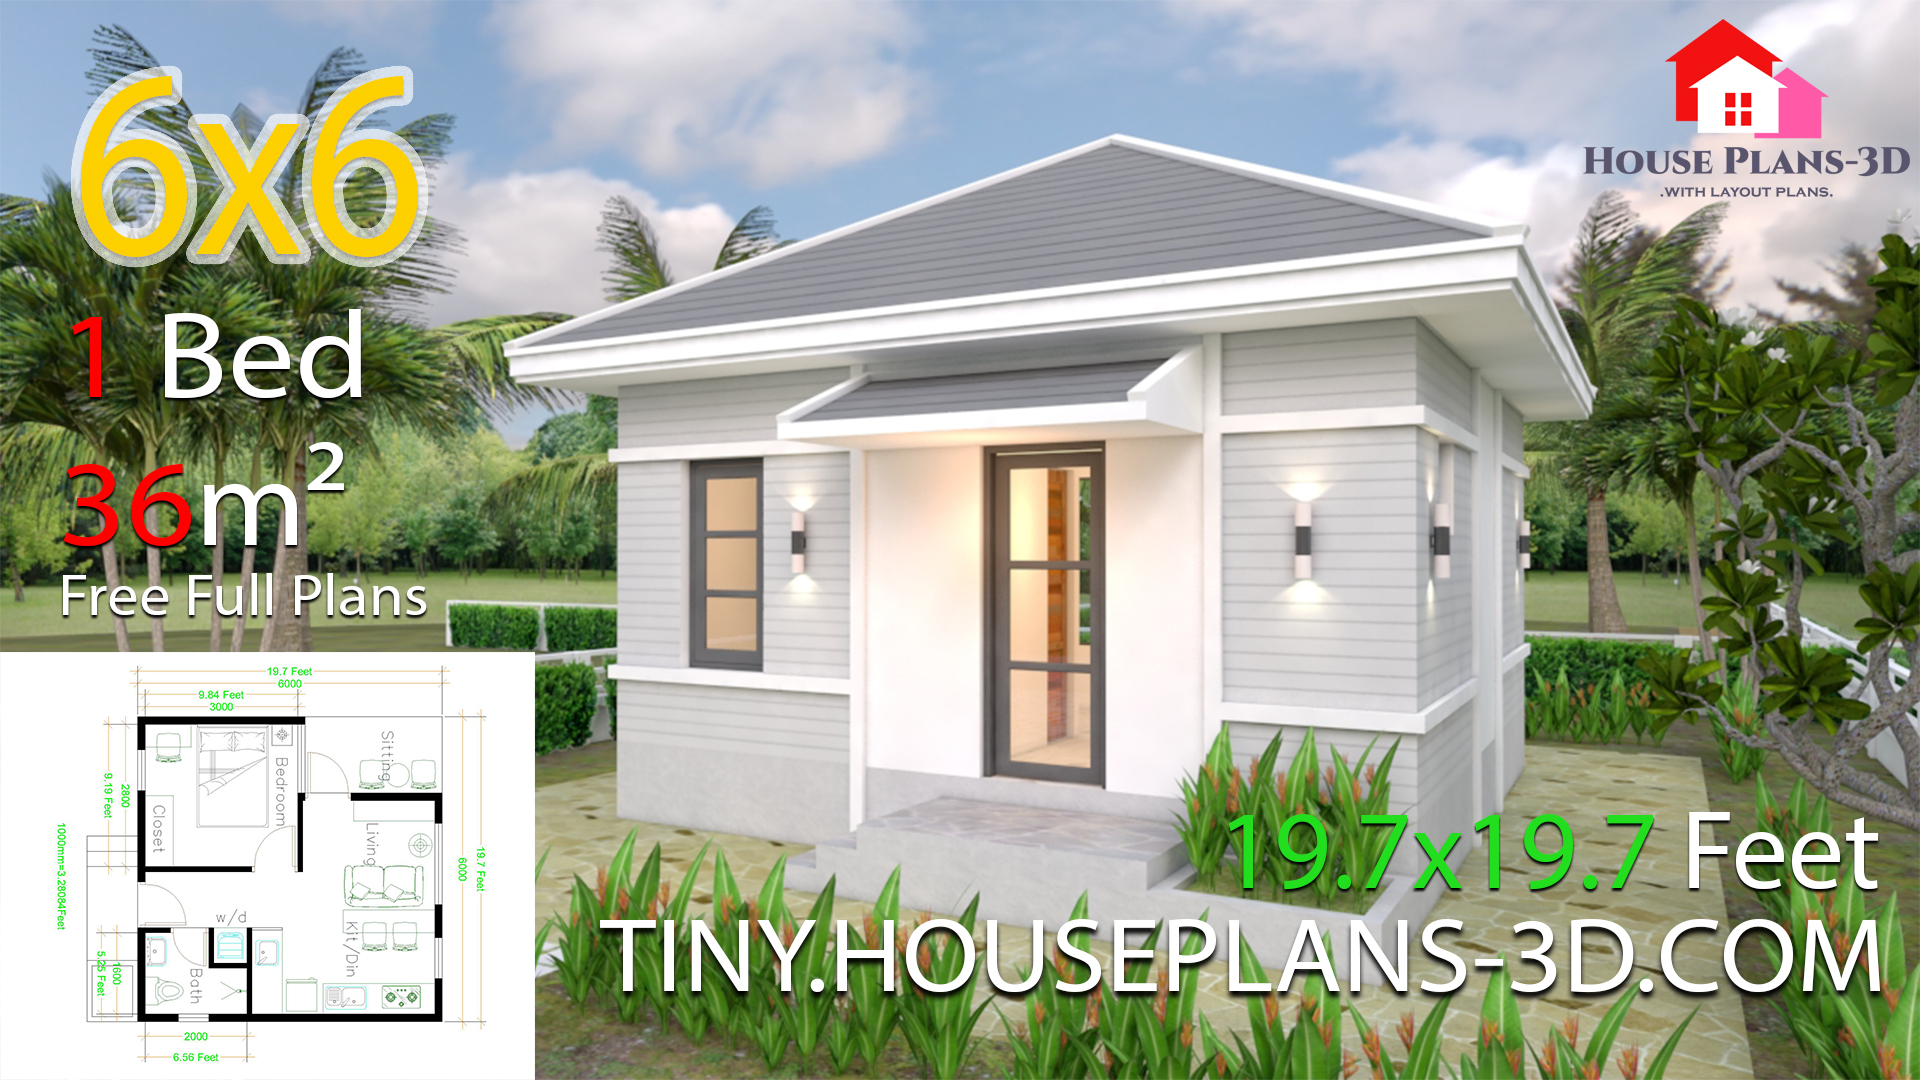 Small House Plans 6x6 With One Bedroom Hip Roof Tiny House Plans